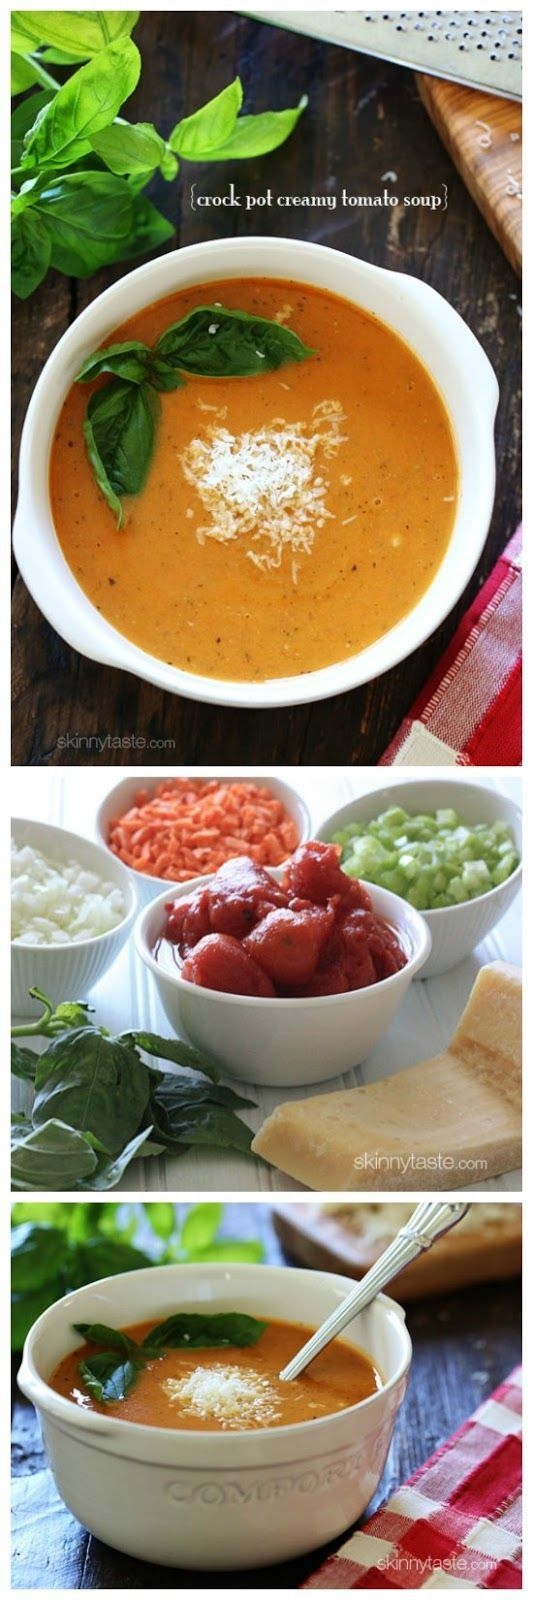 Crock Pot Creamy Tomato Soup from Skinnytaste uses canned tomatoes; PIN NOW so you'll have this for soup weather! [featured on Slow Cooker or Pressure Cooker at SlowCookerFromScratch.com] #SlowCooker #CrockPot #TomatoSoup #Vegetarian